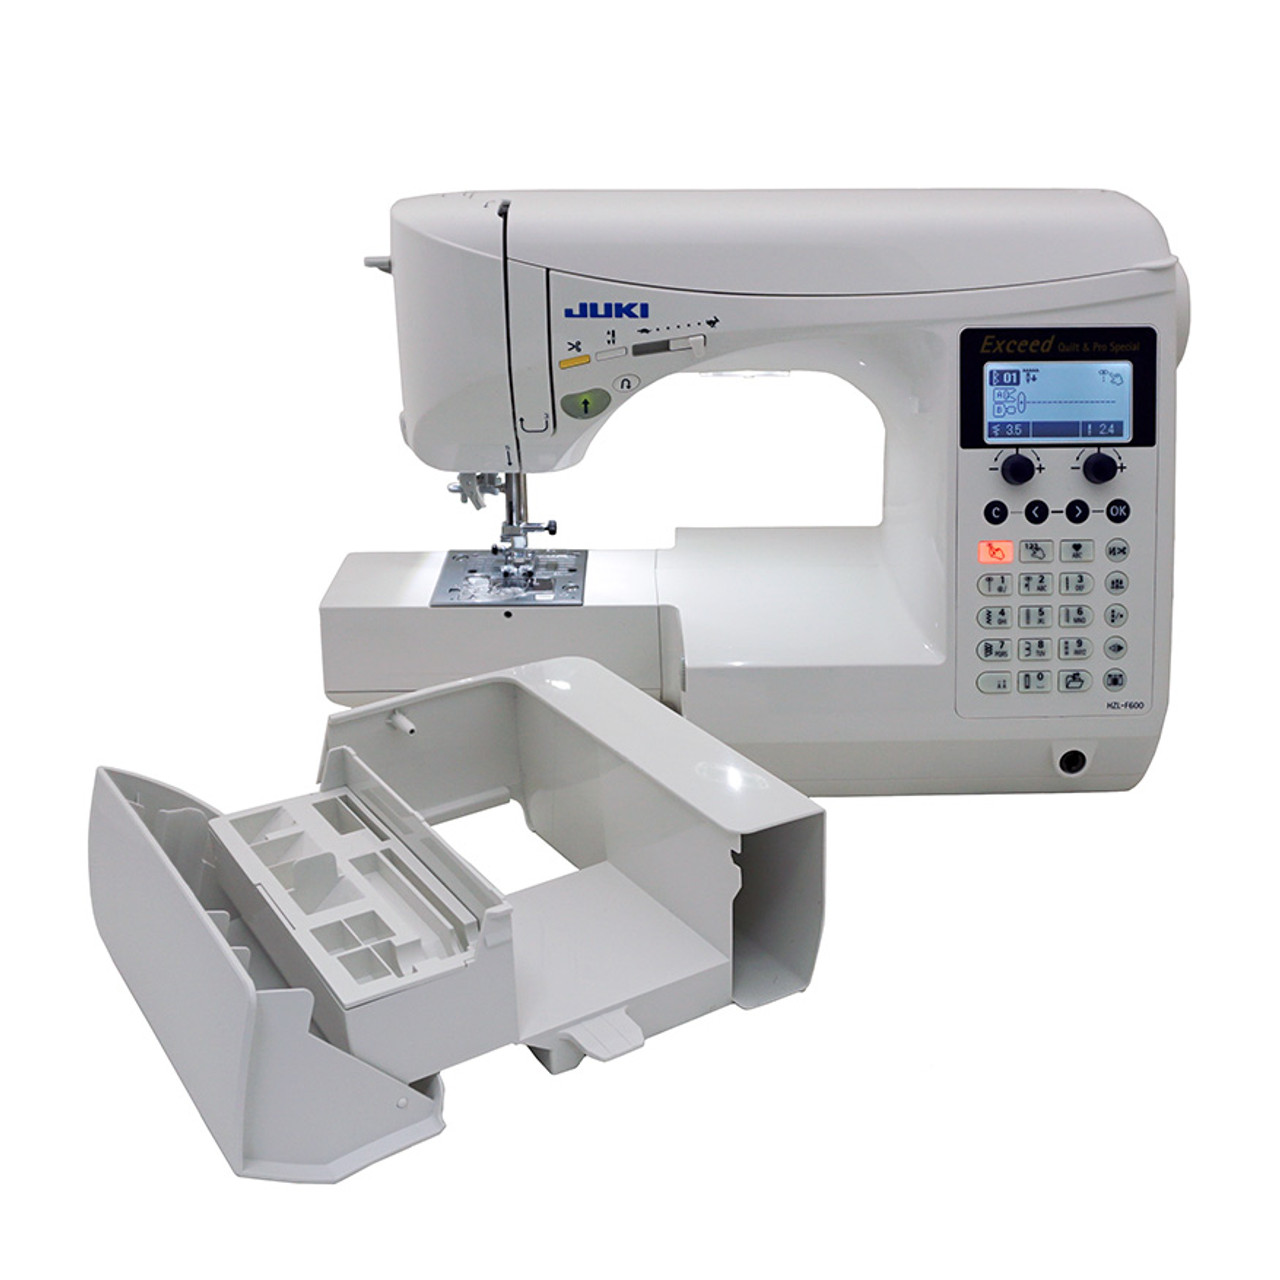 Juki Exceed HZL F40 Quilt Pro Special Computerized Sewing Machine Inspiration Juki Sewing Machines Near Me